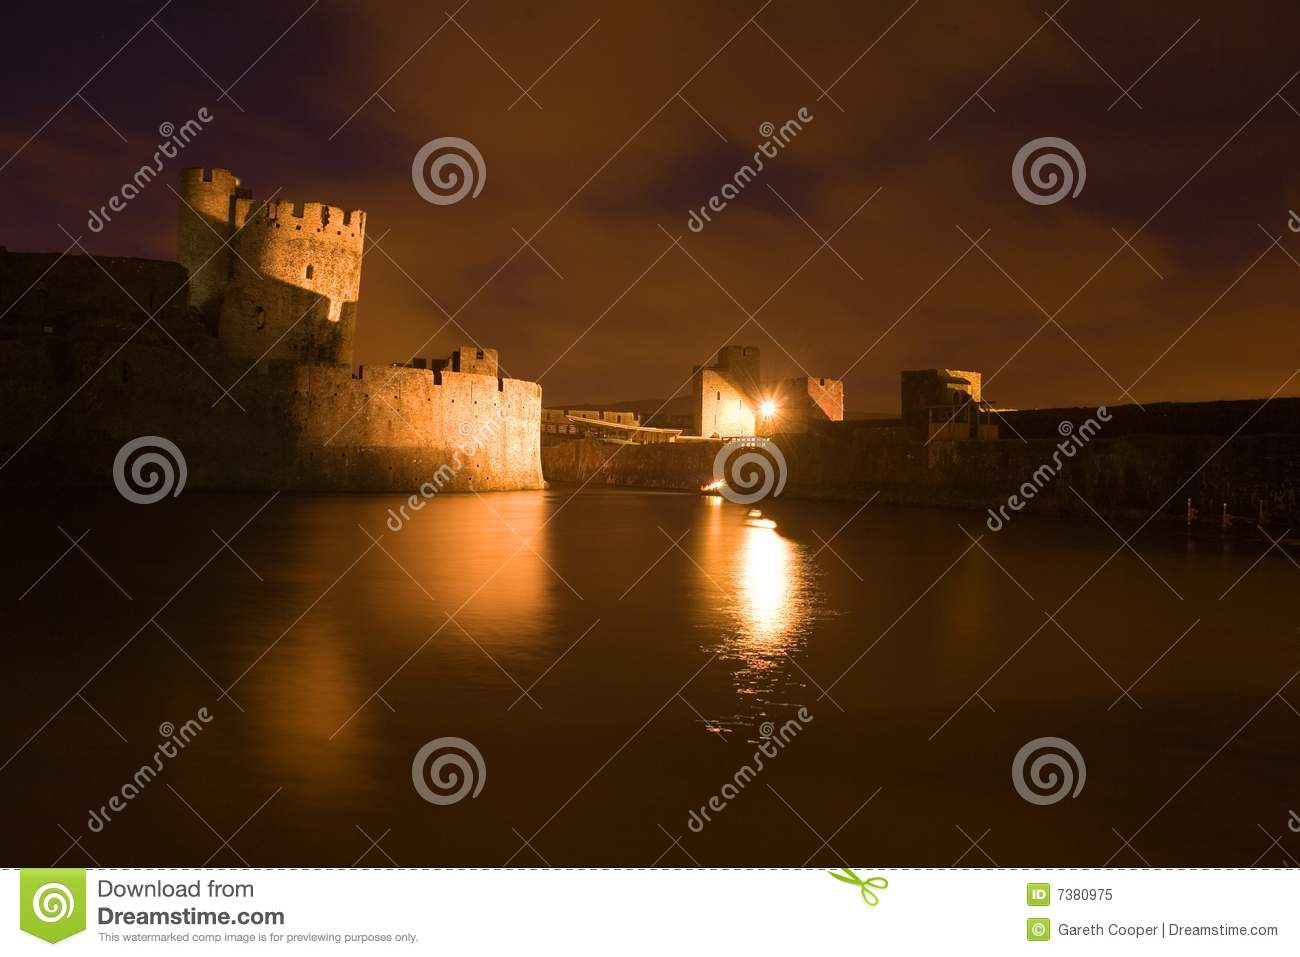 Carephilly Castle at evenlight